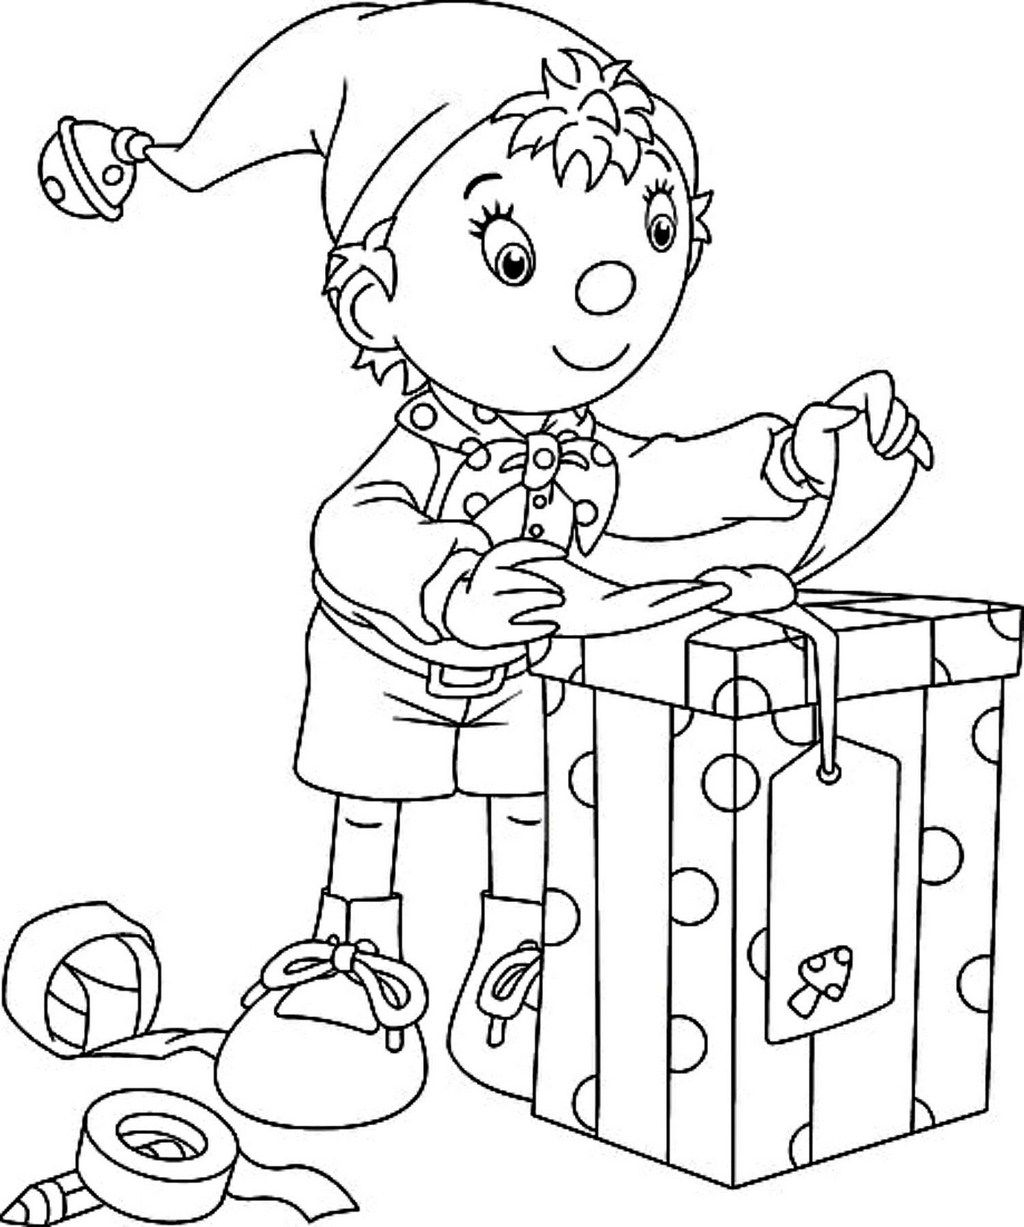 Disney Elf Coloring Page Elf On The Shelf Packages Gifts Coloring Page Christmas Present Coloring Pages Coloring Pages Christmas Gift Coloring Pages